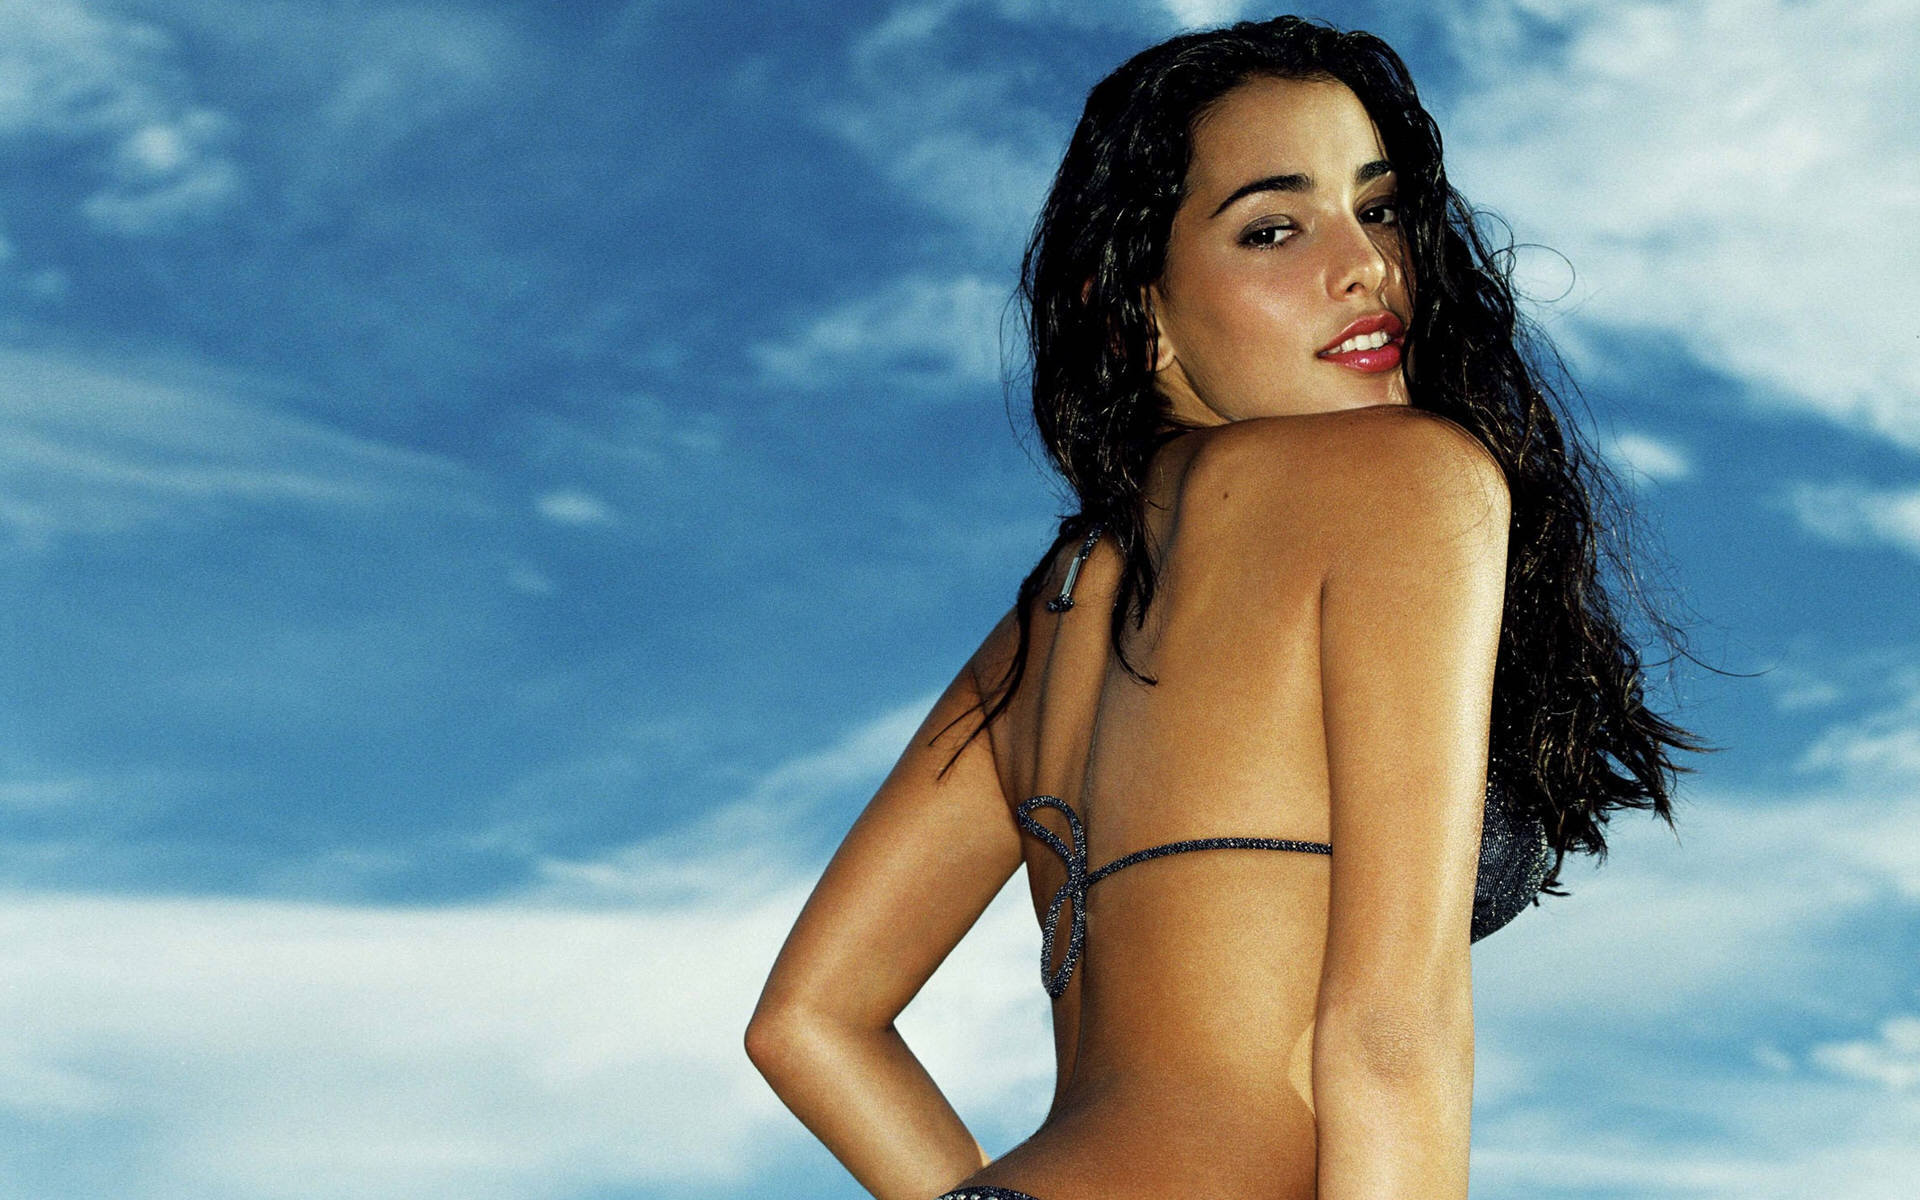 naked pictures of natalie martinez